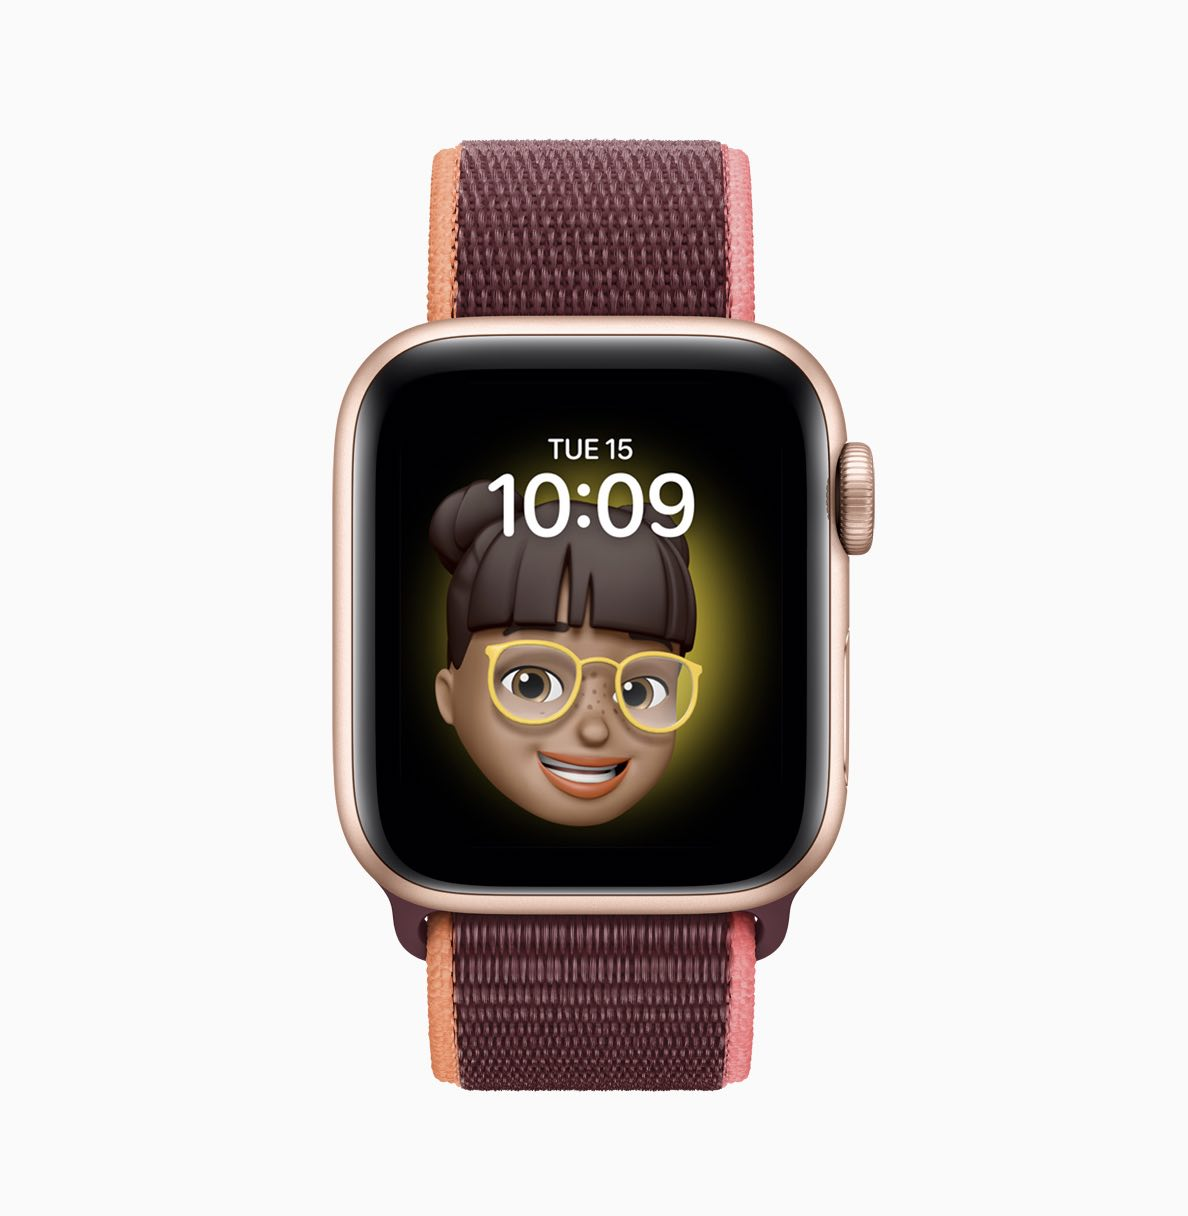 Your kids can create their own memojis and even design their own Apple Watch face.